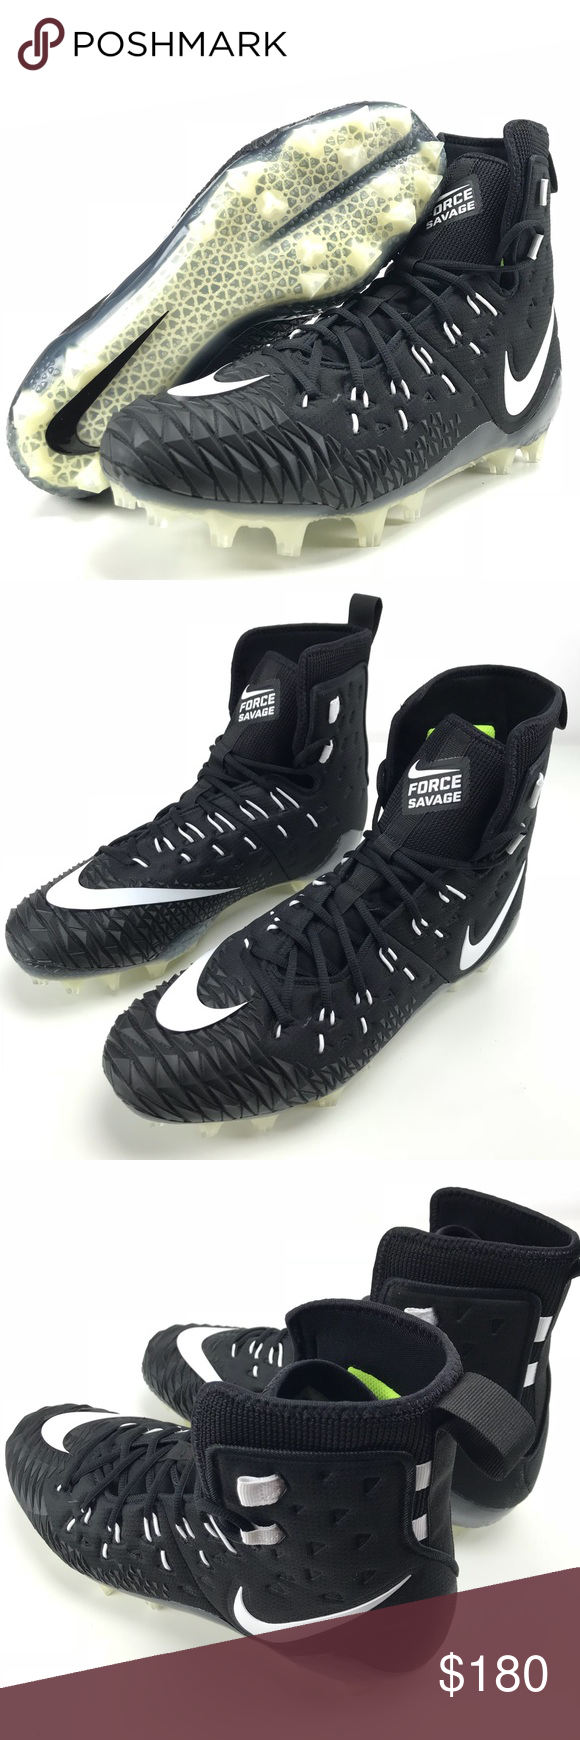 buy online fa05b 2ad43 Nike Football Cleats Men s Force Savage Elite TD Nike Football Cleats Men s  Force Savage Elite TD Black White 857063 Brand new, ships without original  box ...